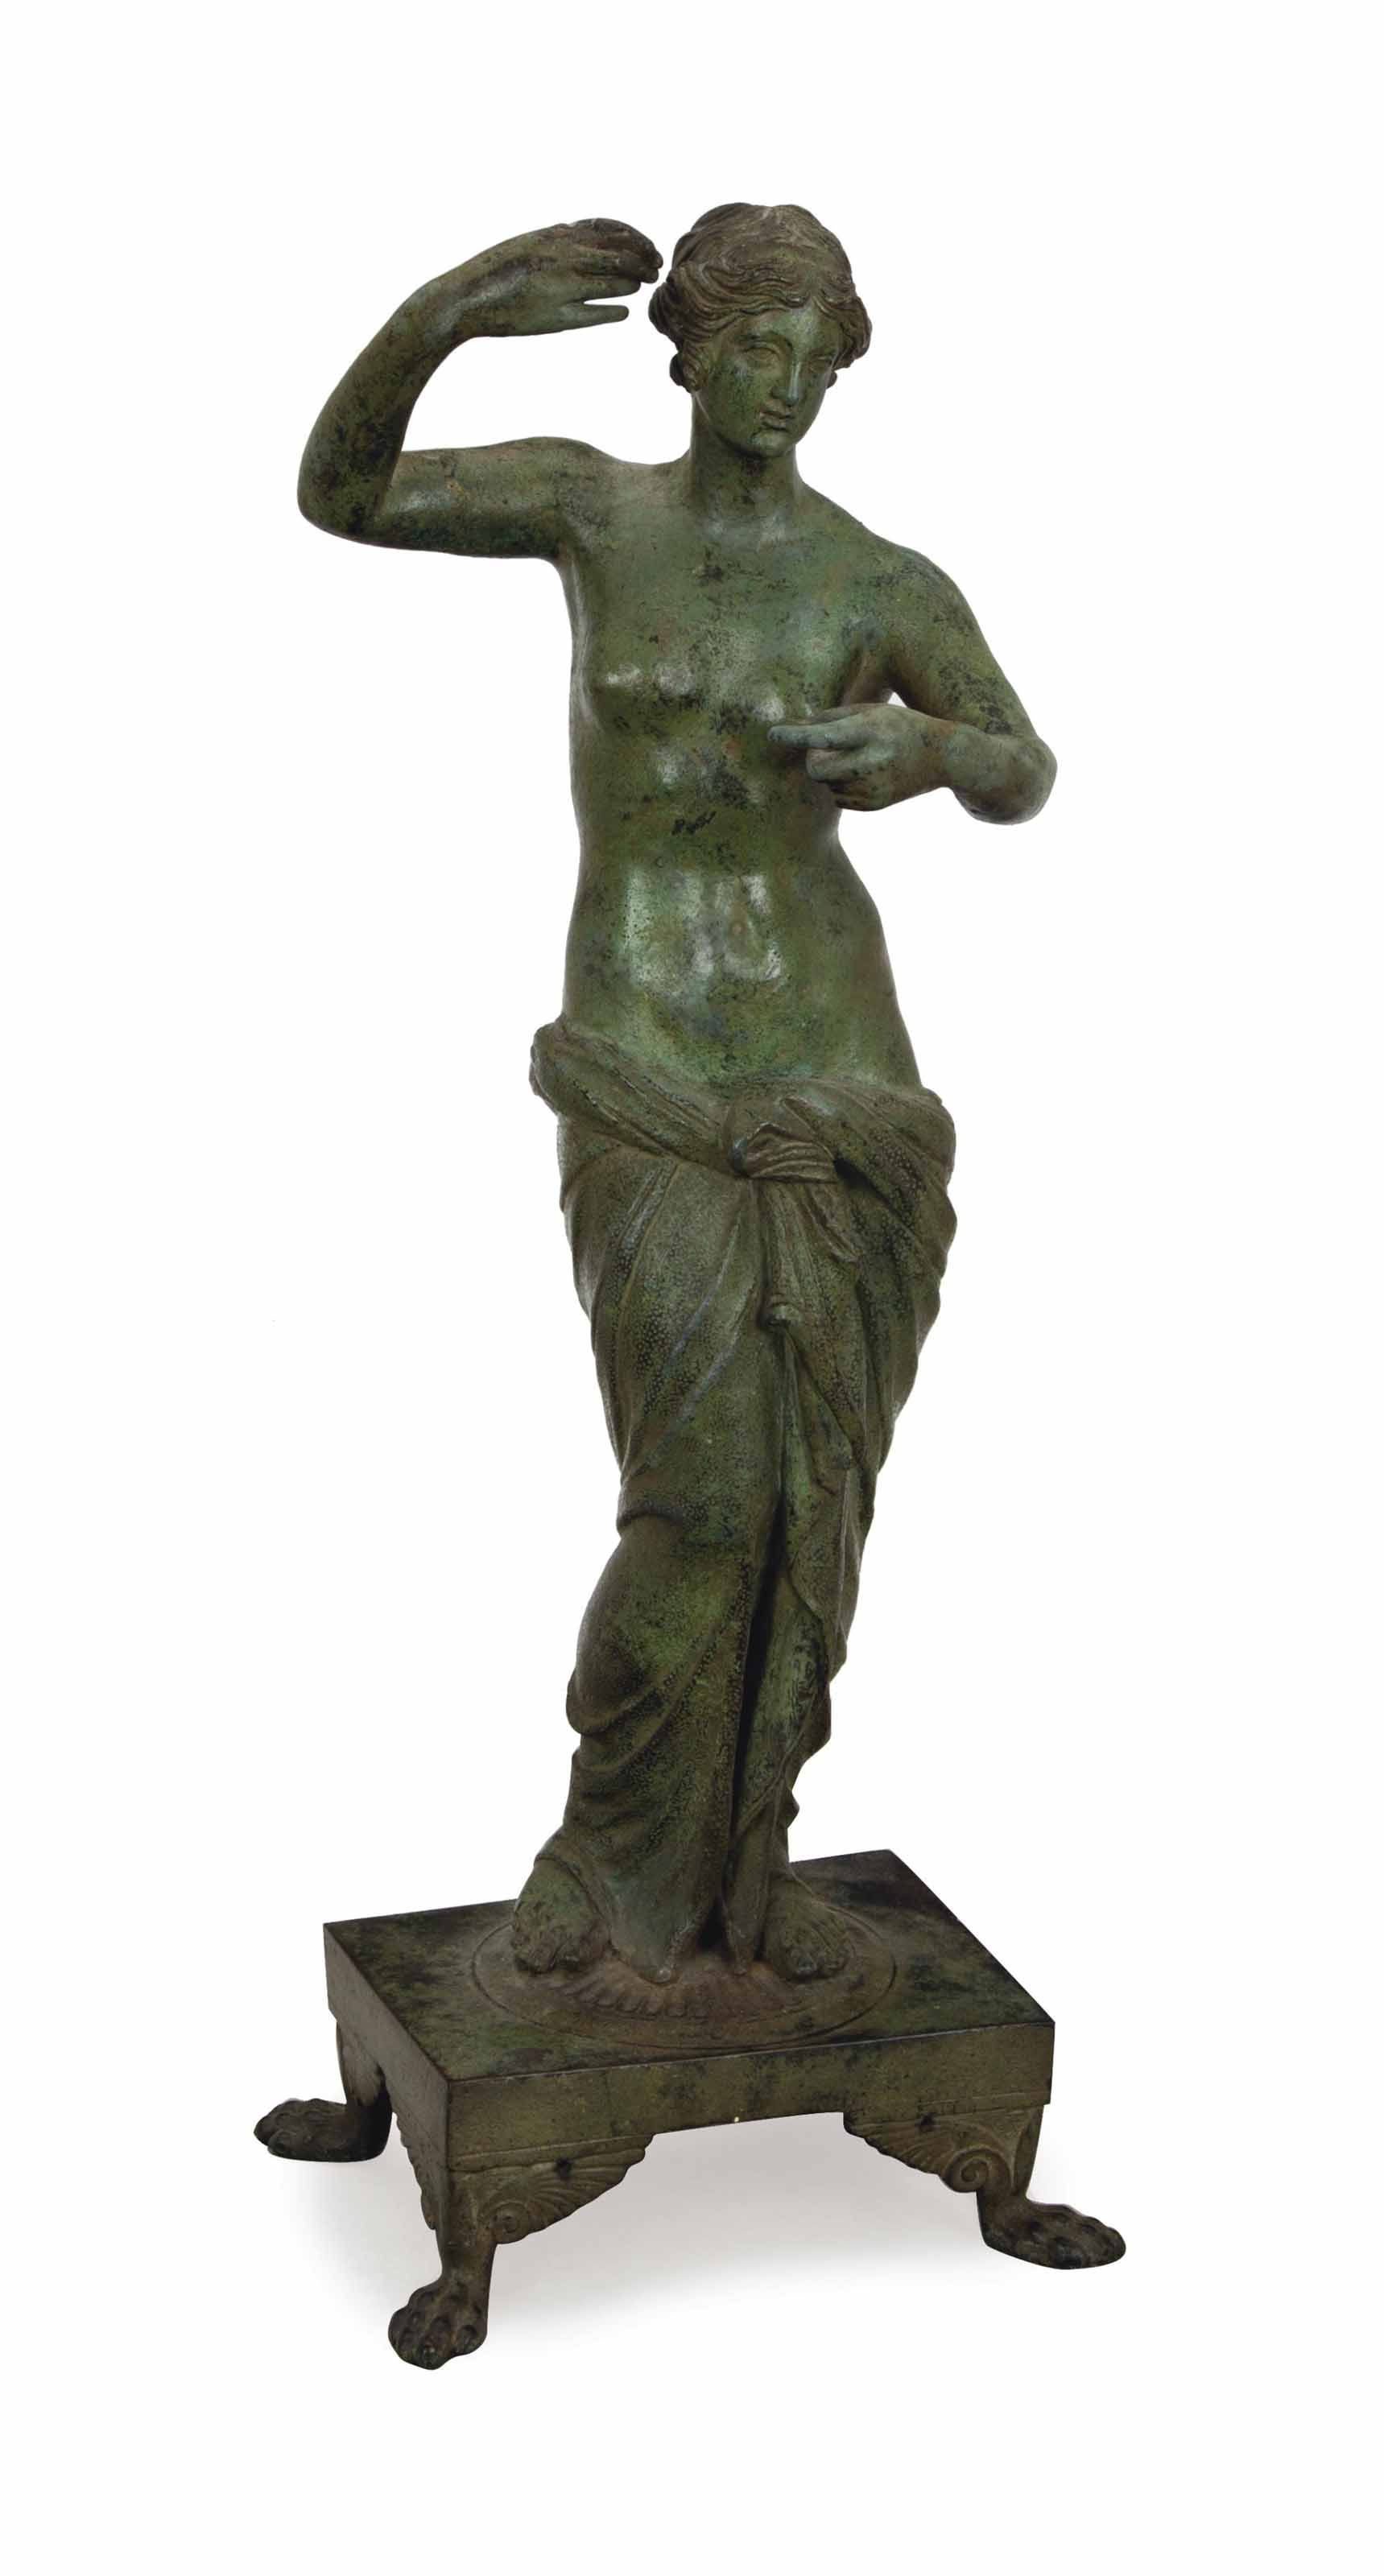 A PATINATED-METAL FIGURE OF A